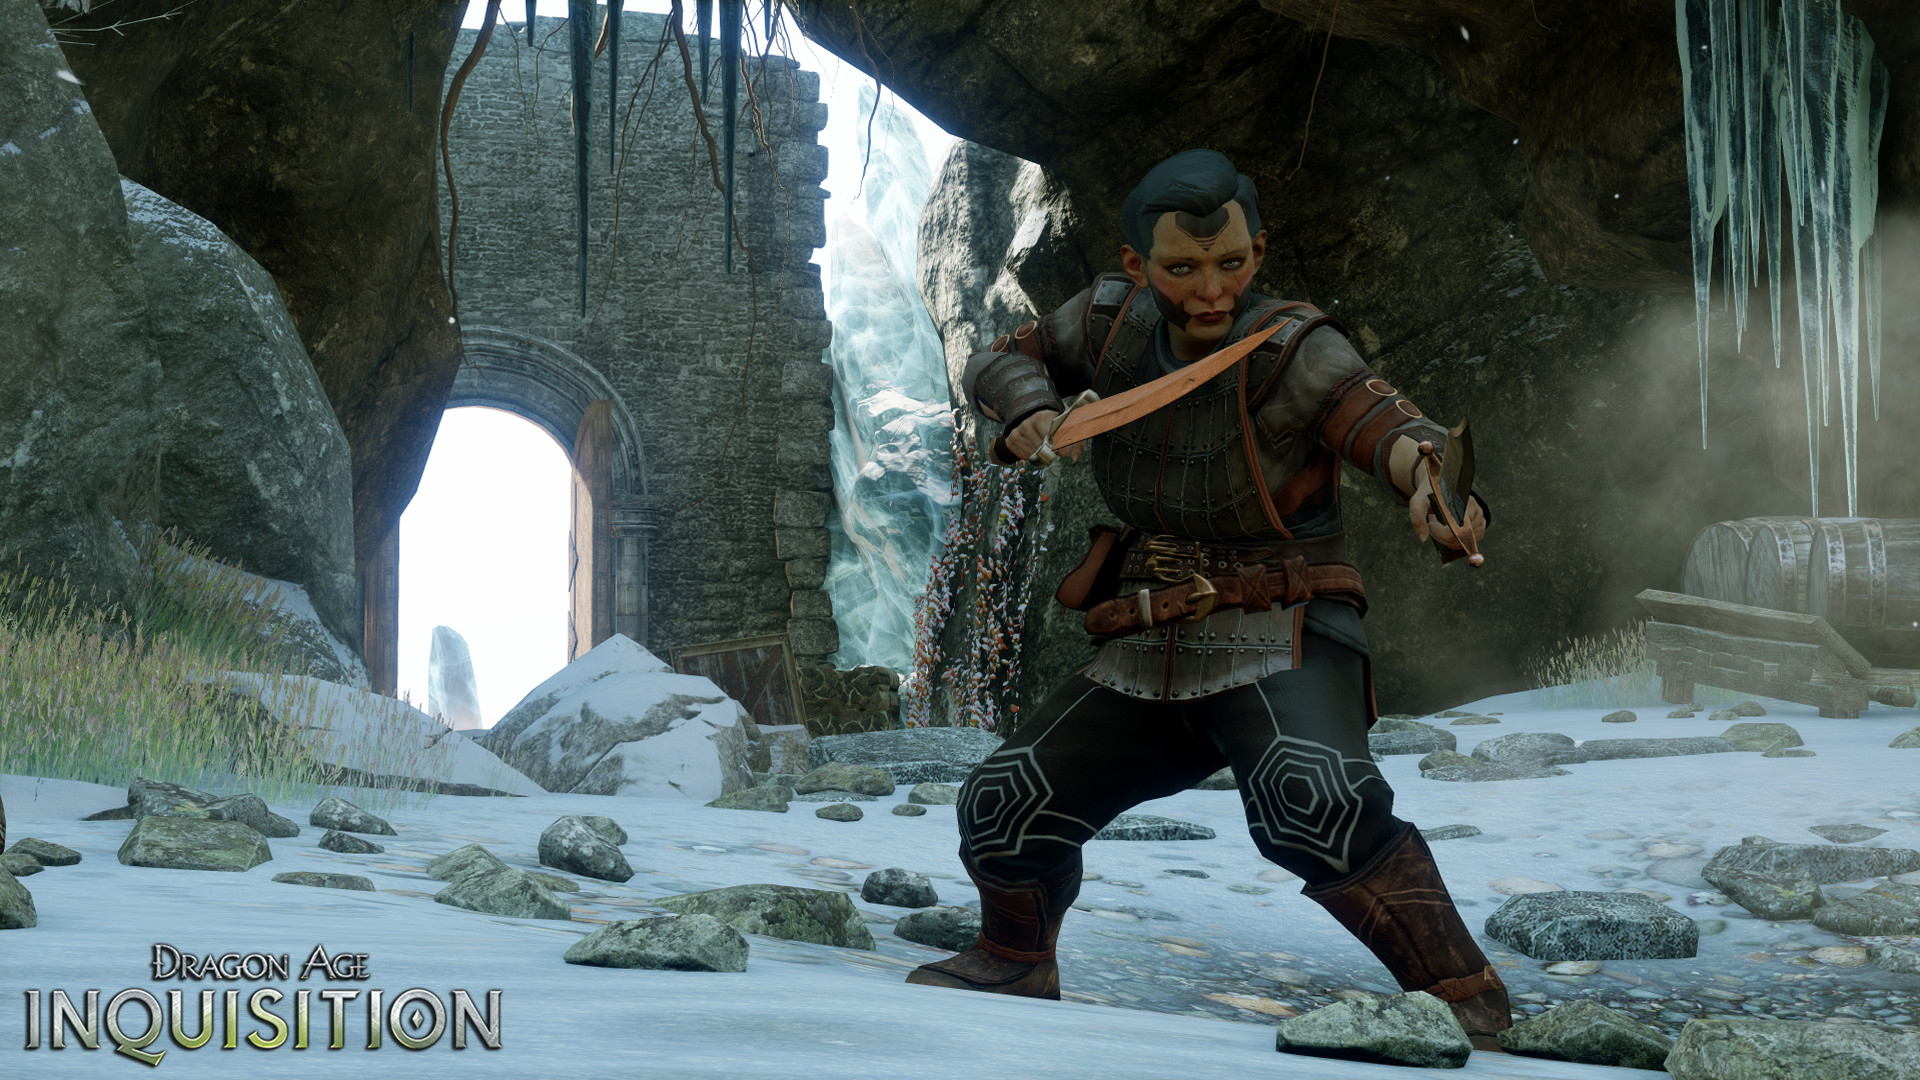 Dragon Age: Inquisition Patch 9 Notes